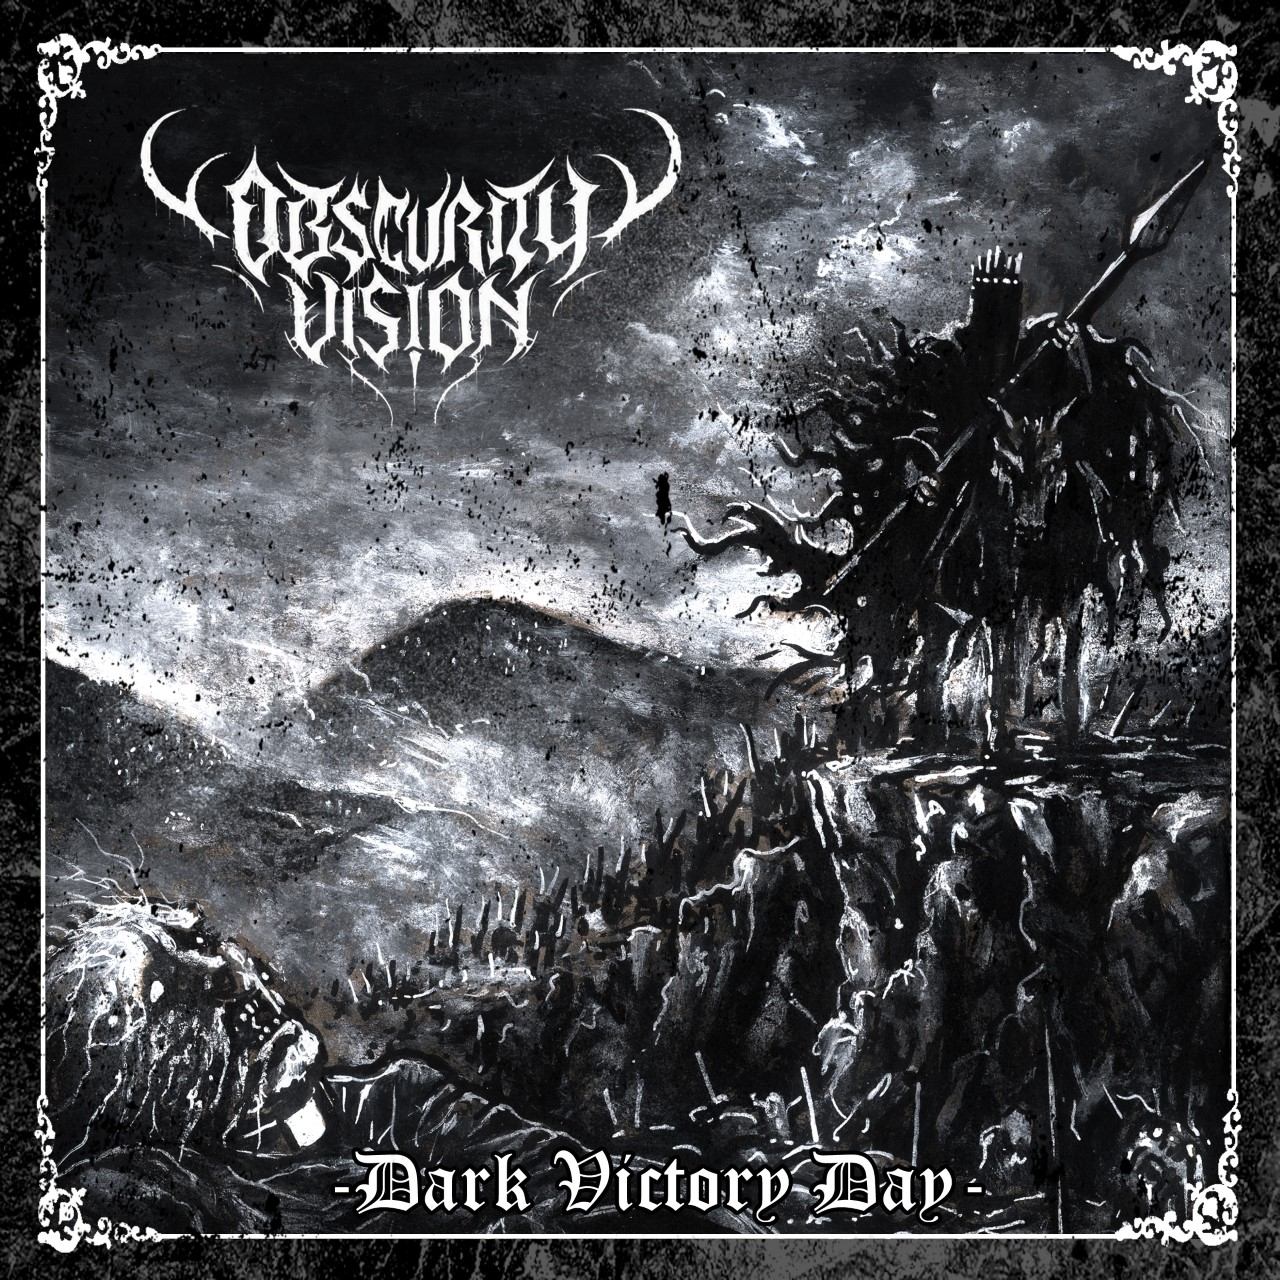 OBSCURITY VISION E TRUE METAL PRESS – PARCERIA DE PESO